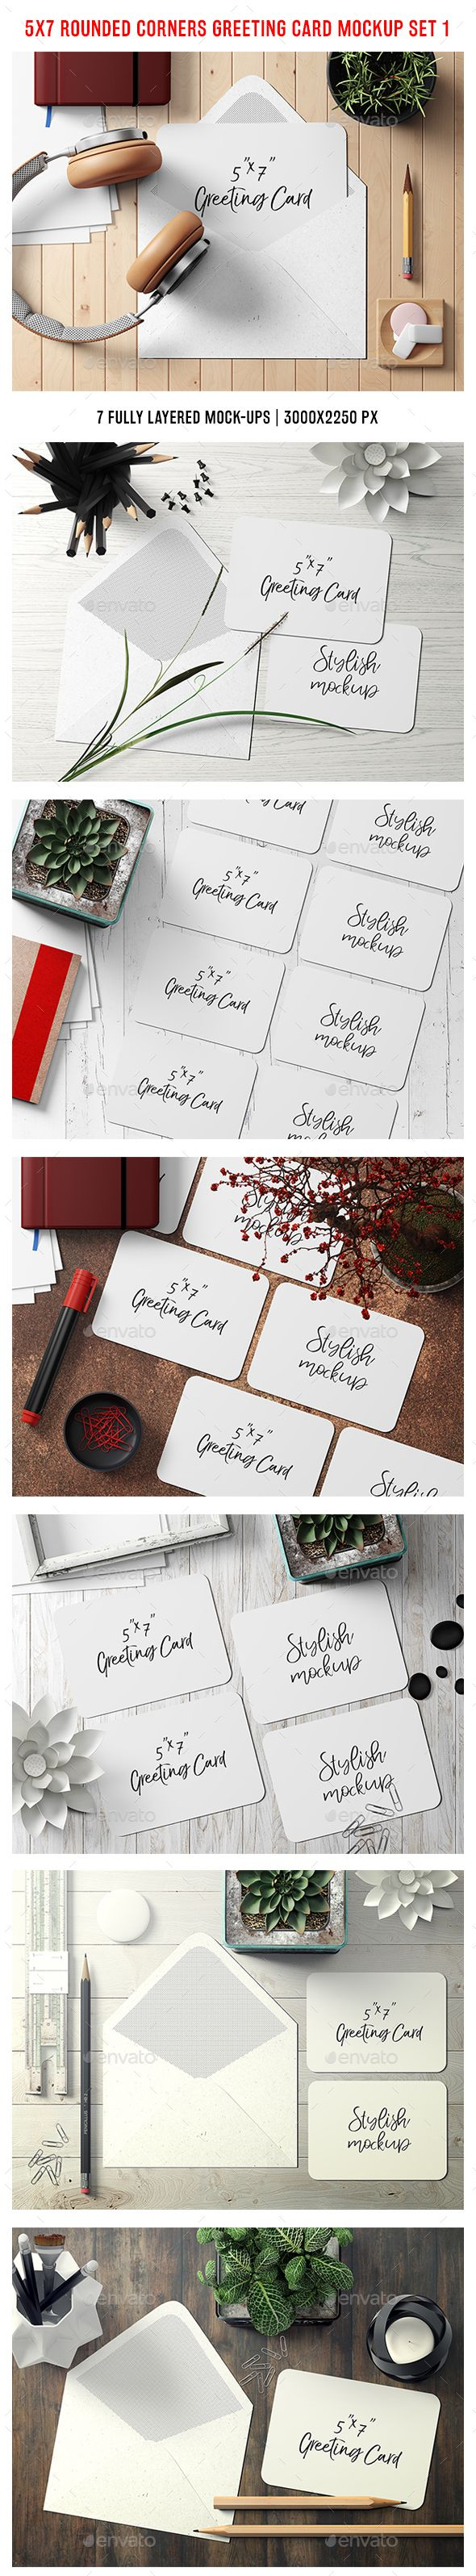 5x7 Rounded Corners Greeting Card / Postcard Mockup - Set 1